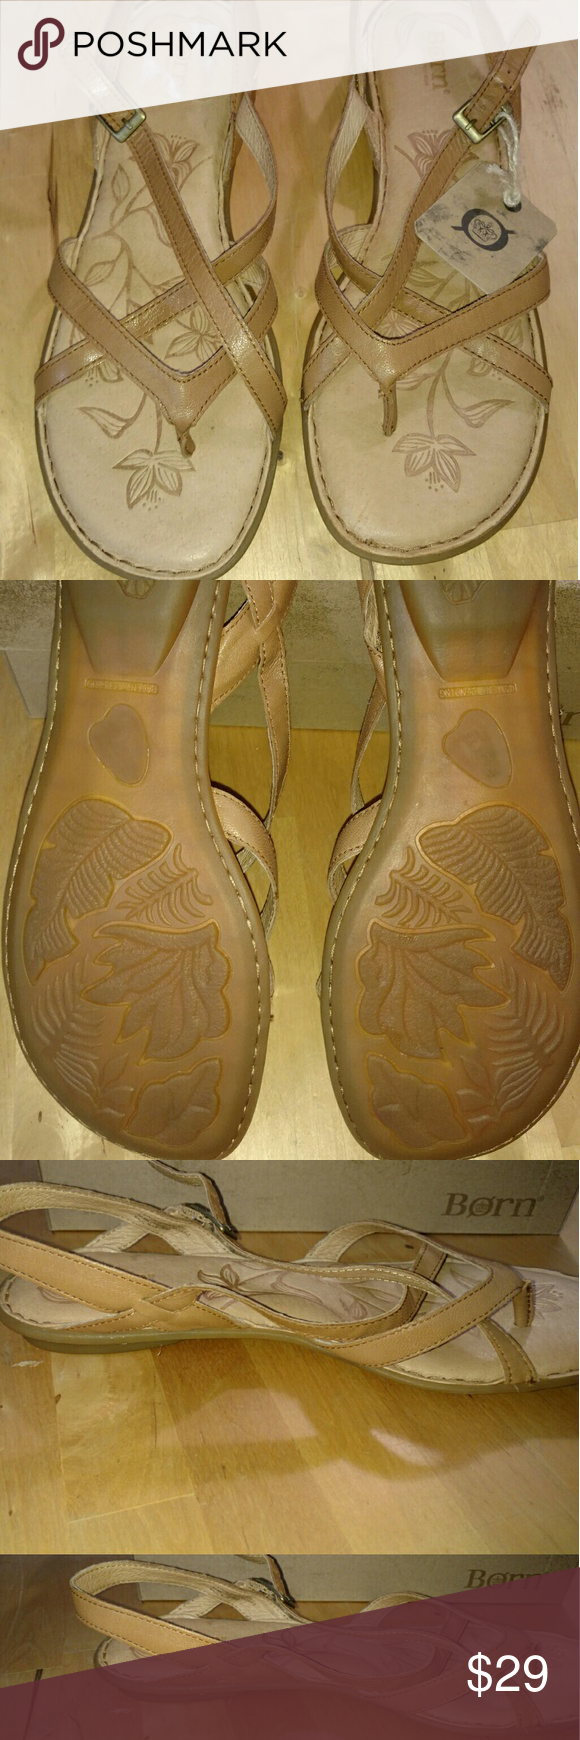 NIB Born Valmar Sandals Very soft and extremely comfortable Never worn Born Shoes Sandals